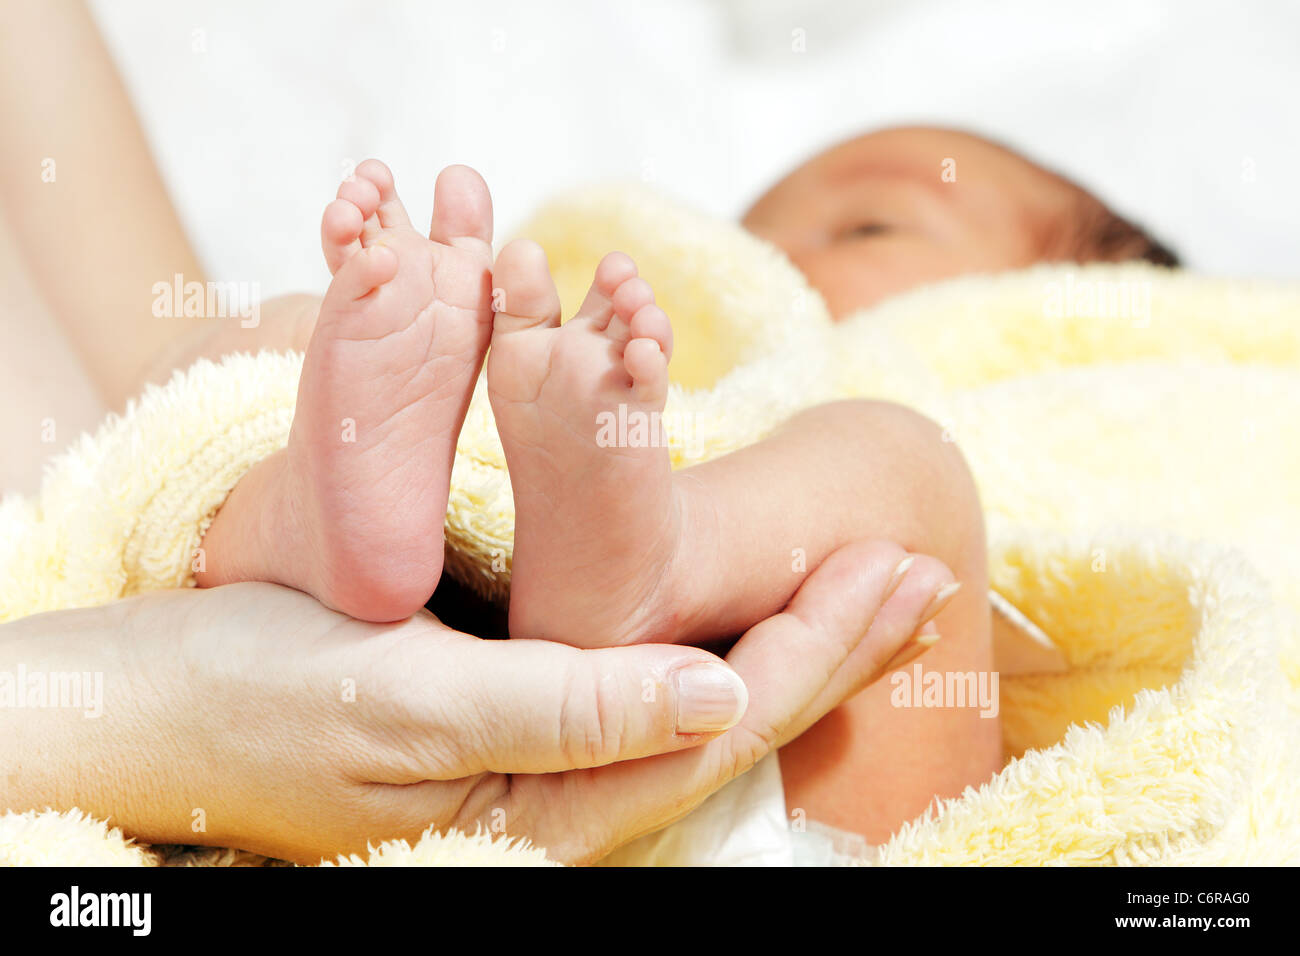 Newborn baby feet in mother's hands with soft yellow blanket